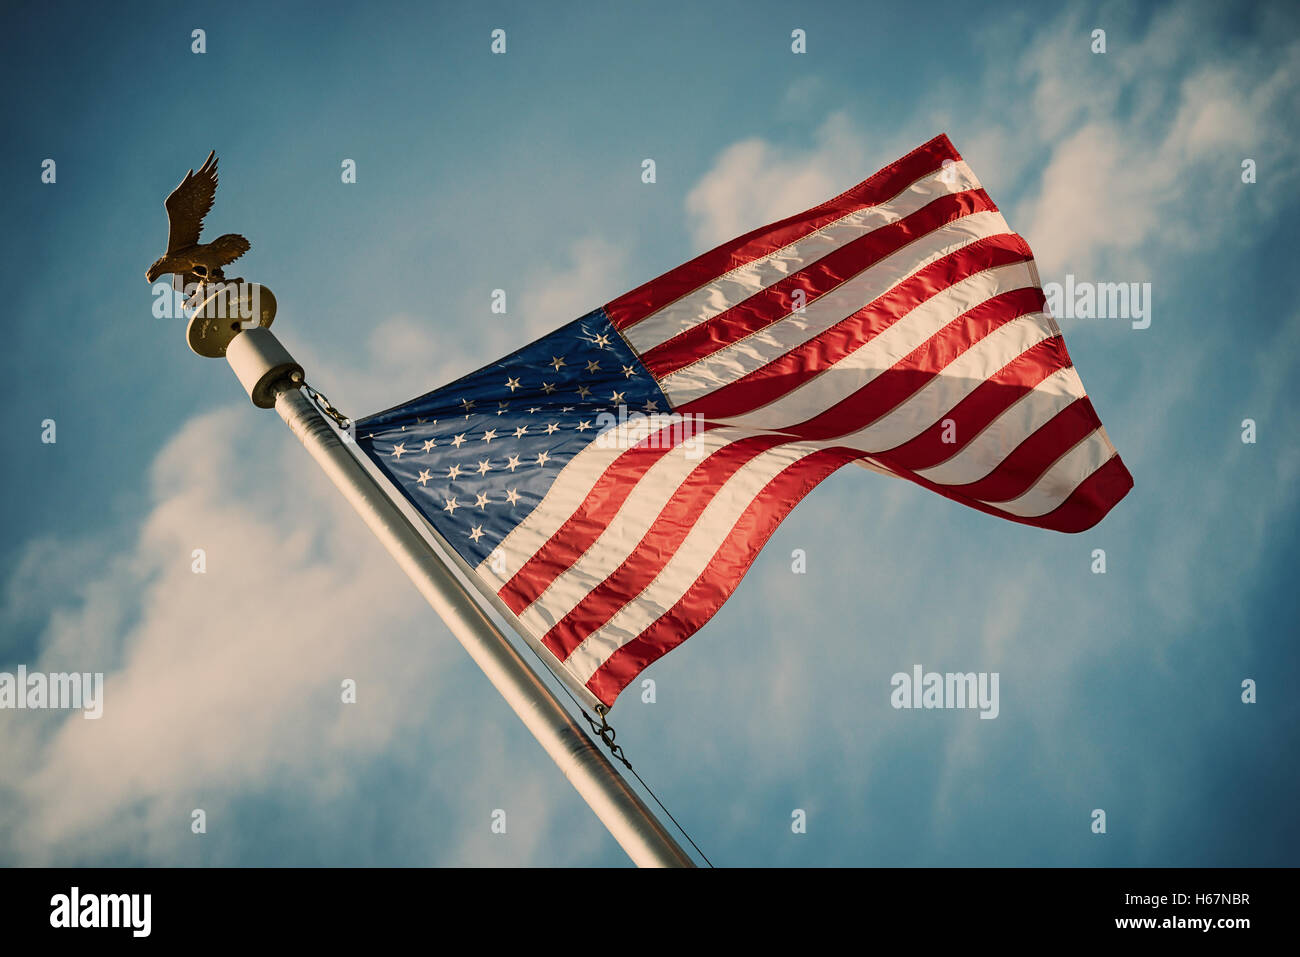 American flag on pole waving in the wind against blue sky and white clouds background - Stock Image